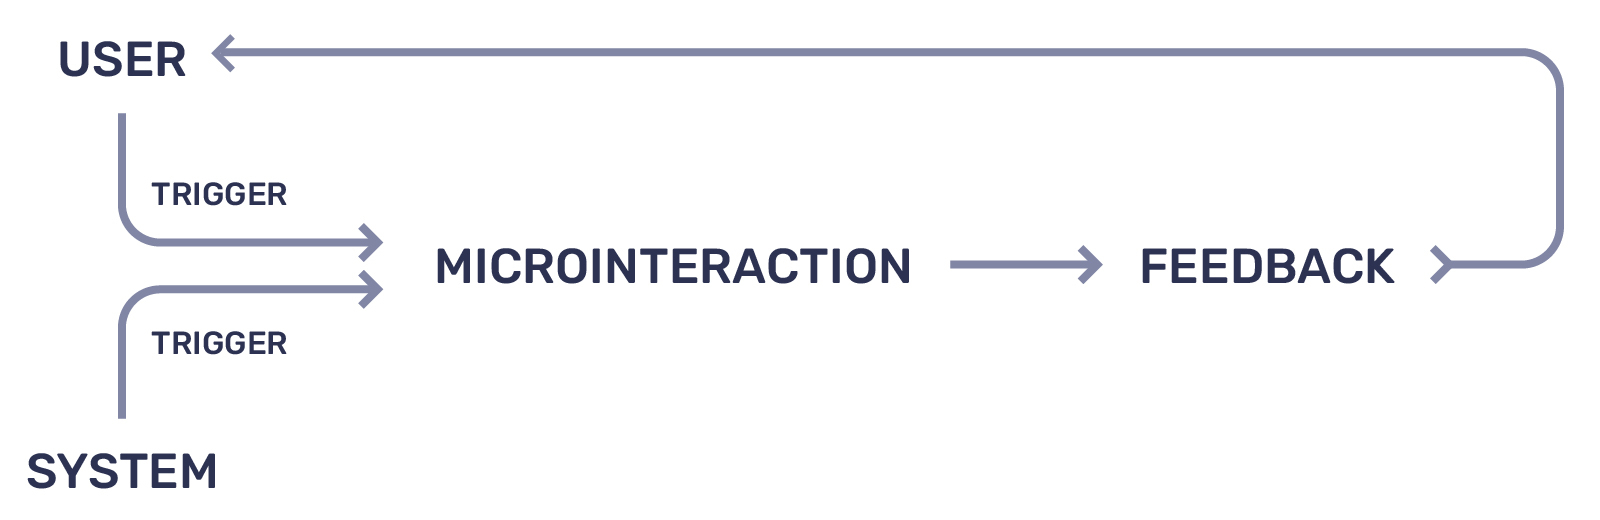 How to Create Better Digital Experiences Using Microinteractions - Microinteraction Flowchart